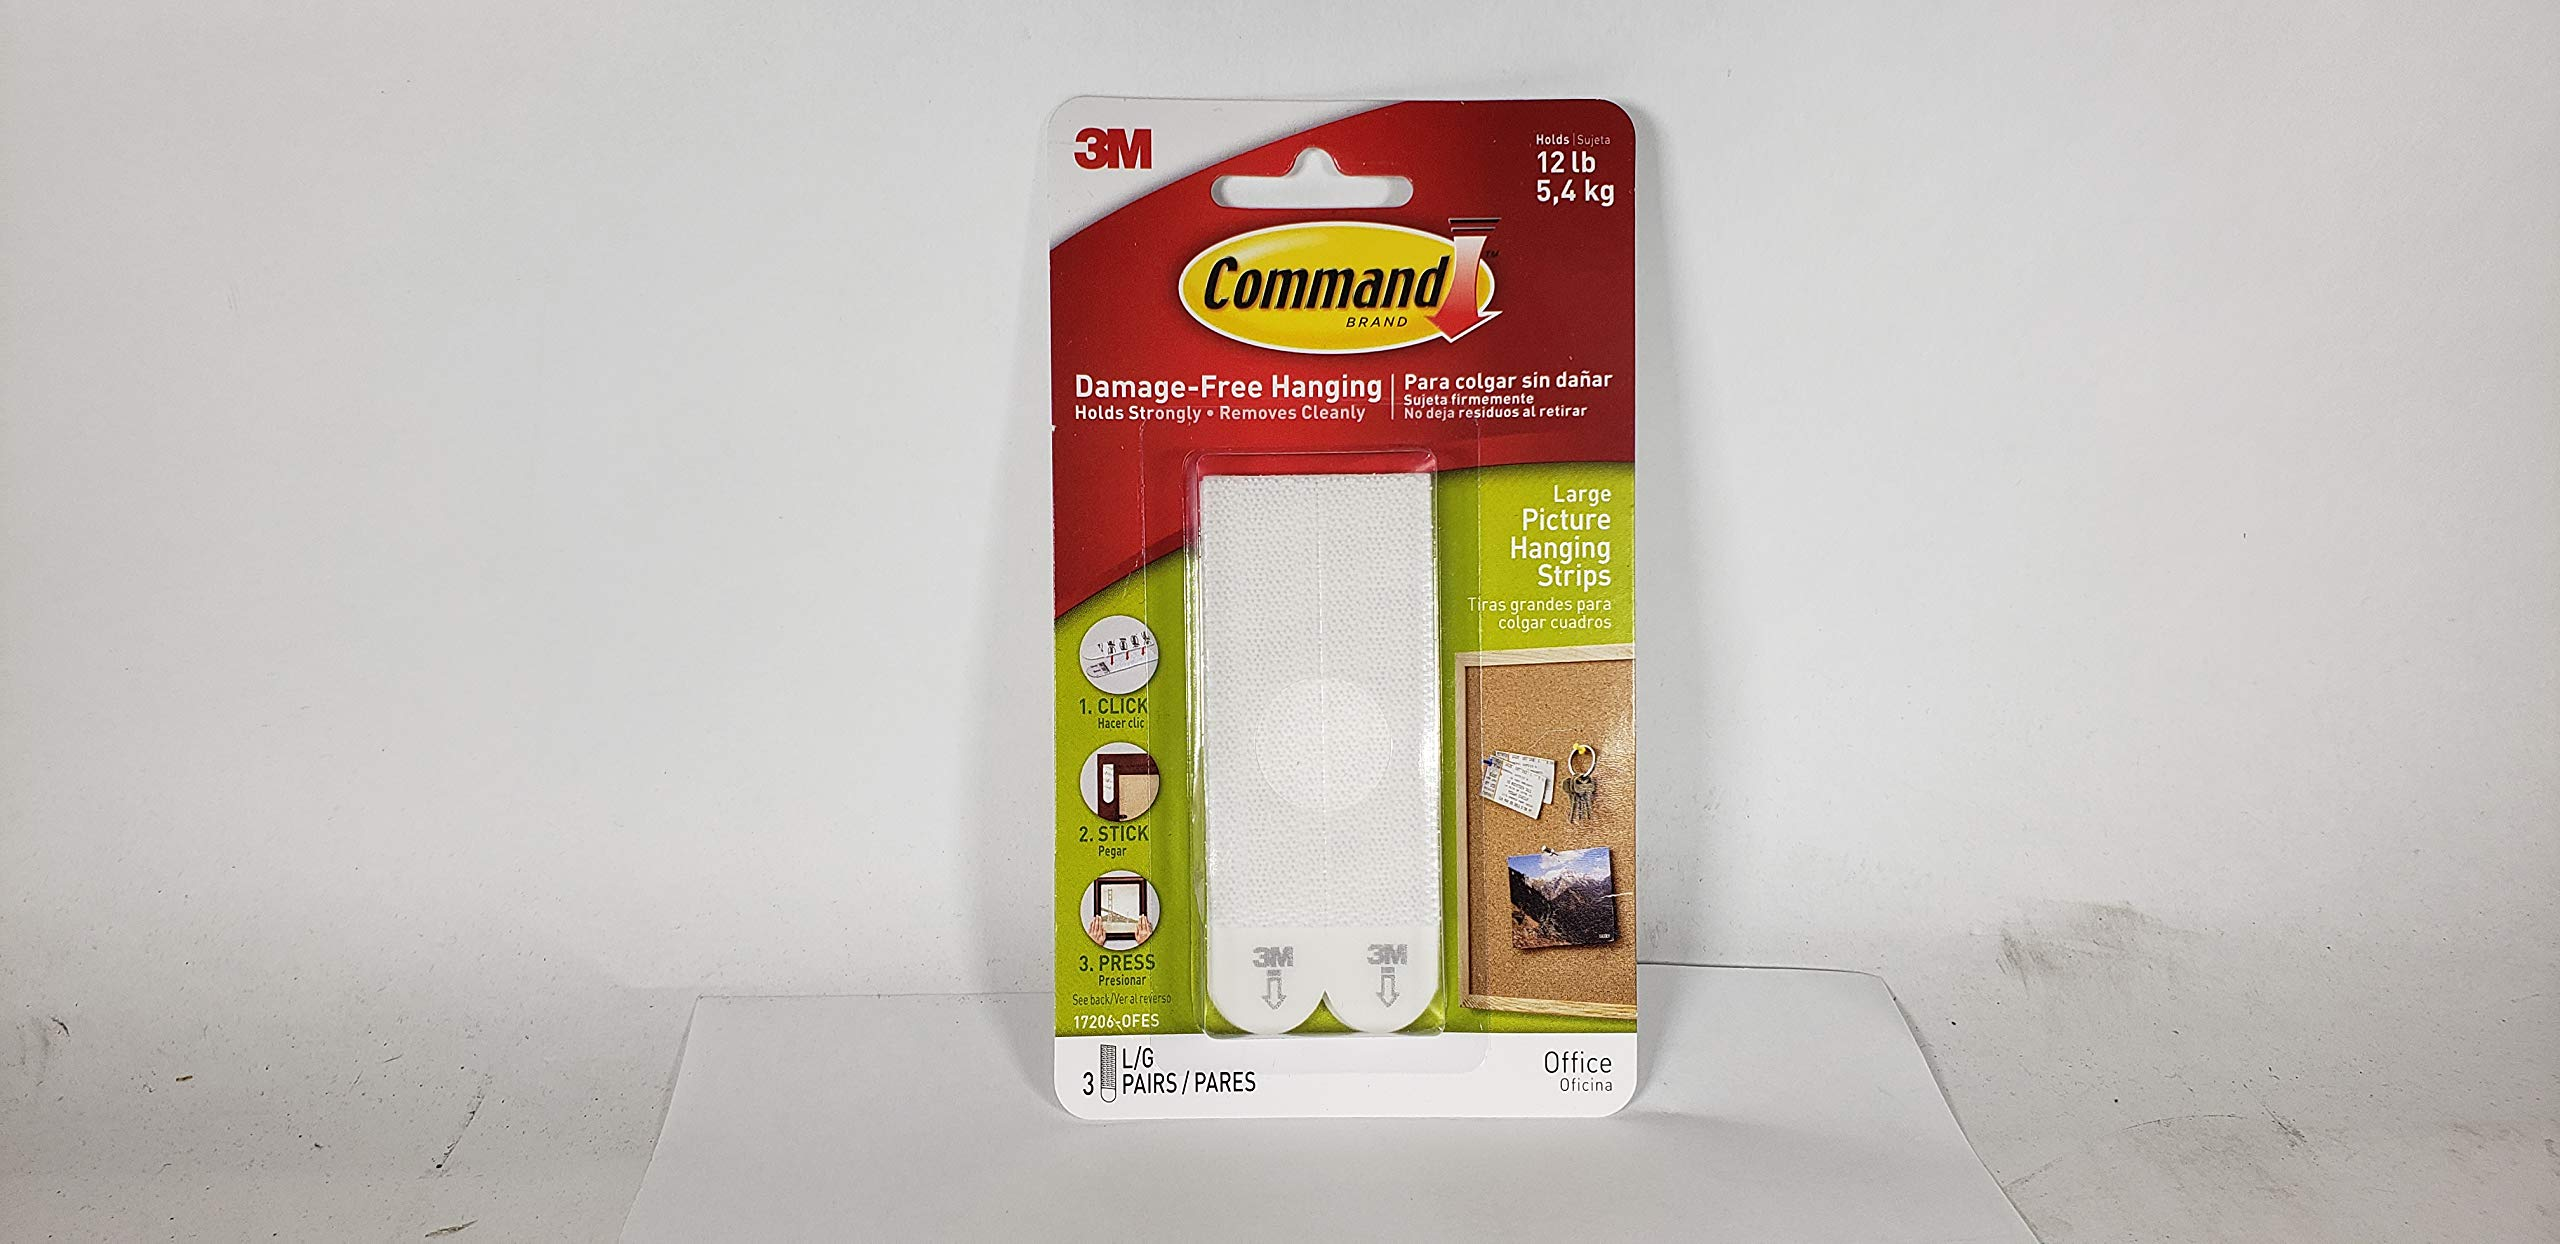 Command Picture WPQ1 & Frame Hanging Strips Value Pack P9JR8W, Large, White, 36-Pairs